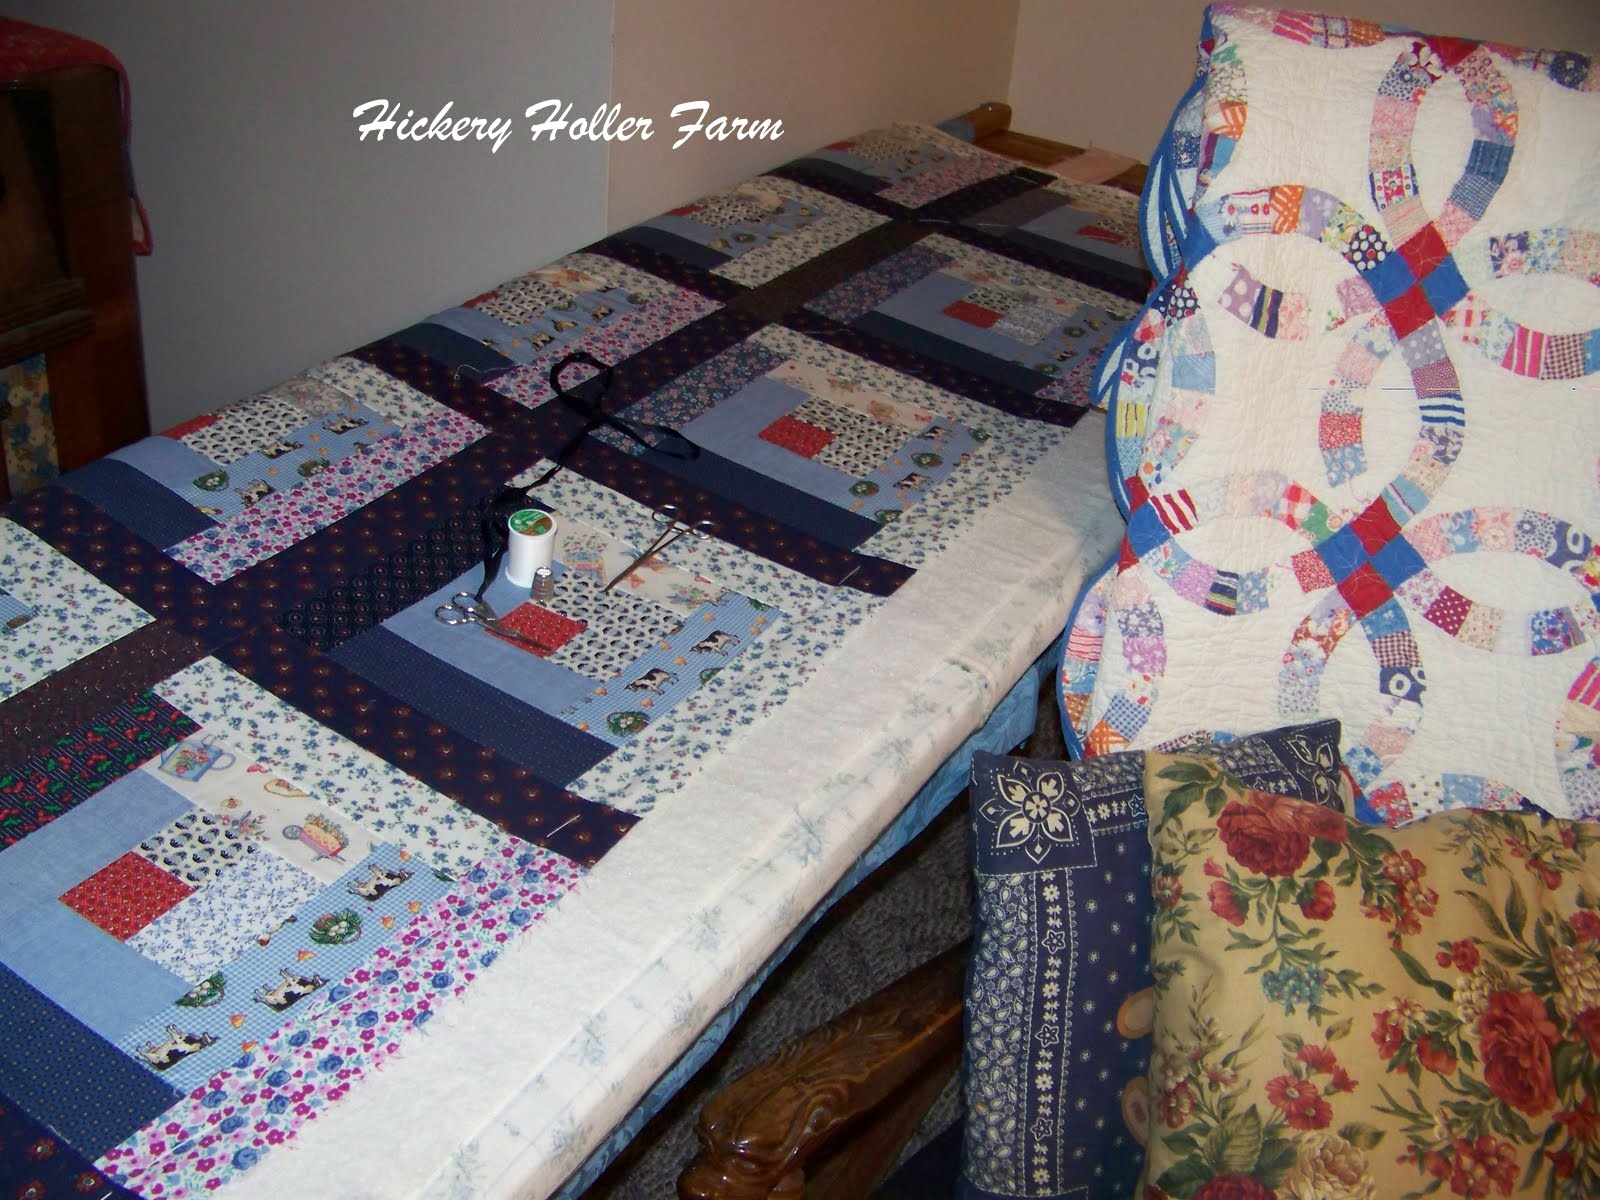 Hickery holler farm the quilt gallery for Floor quilt frame